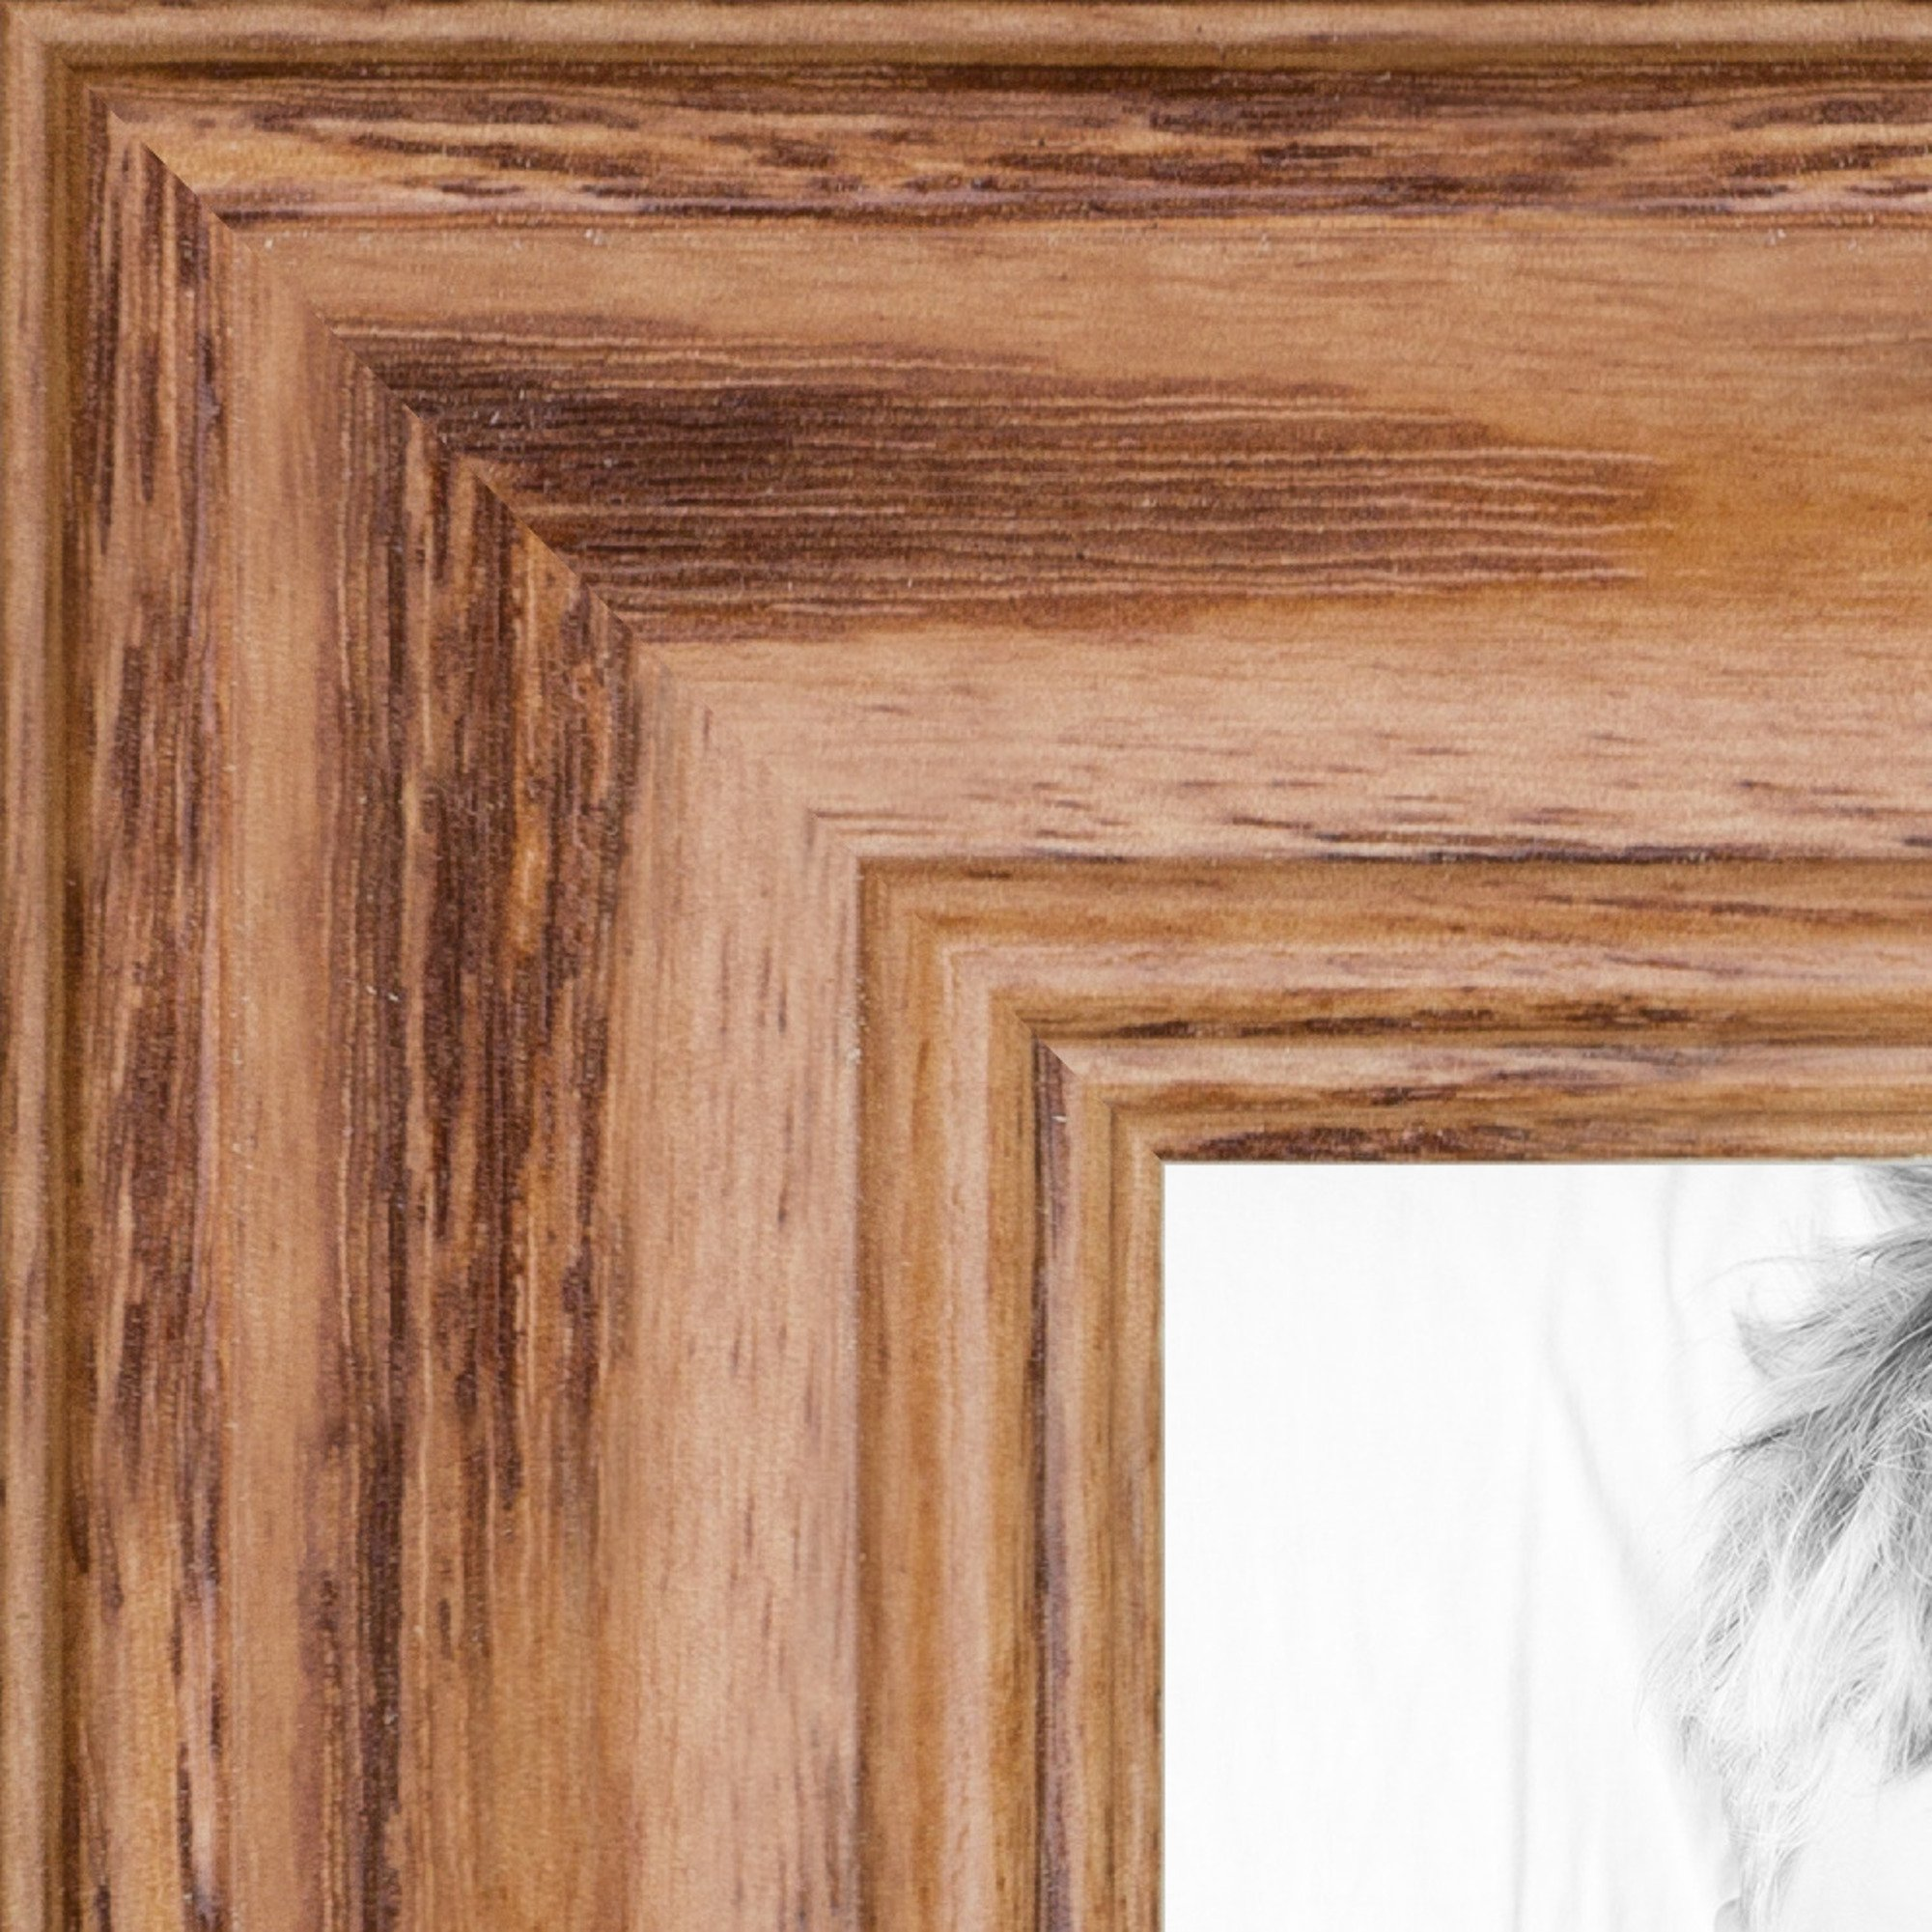 ArtToFrames 5x25 inch Honey Stain on Solid Red Oak Wood Picture Frame, 2WOM0066-59504-YHNY-5x25